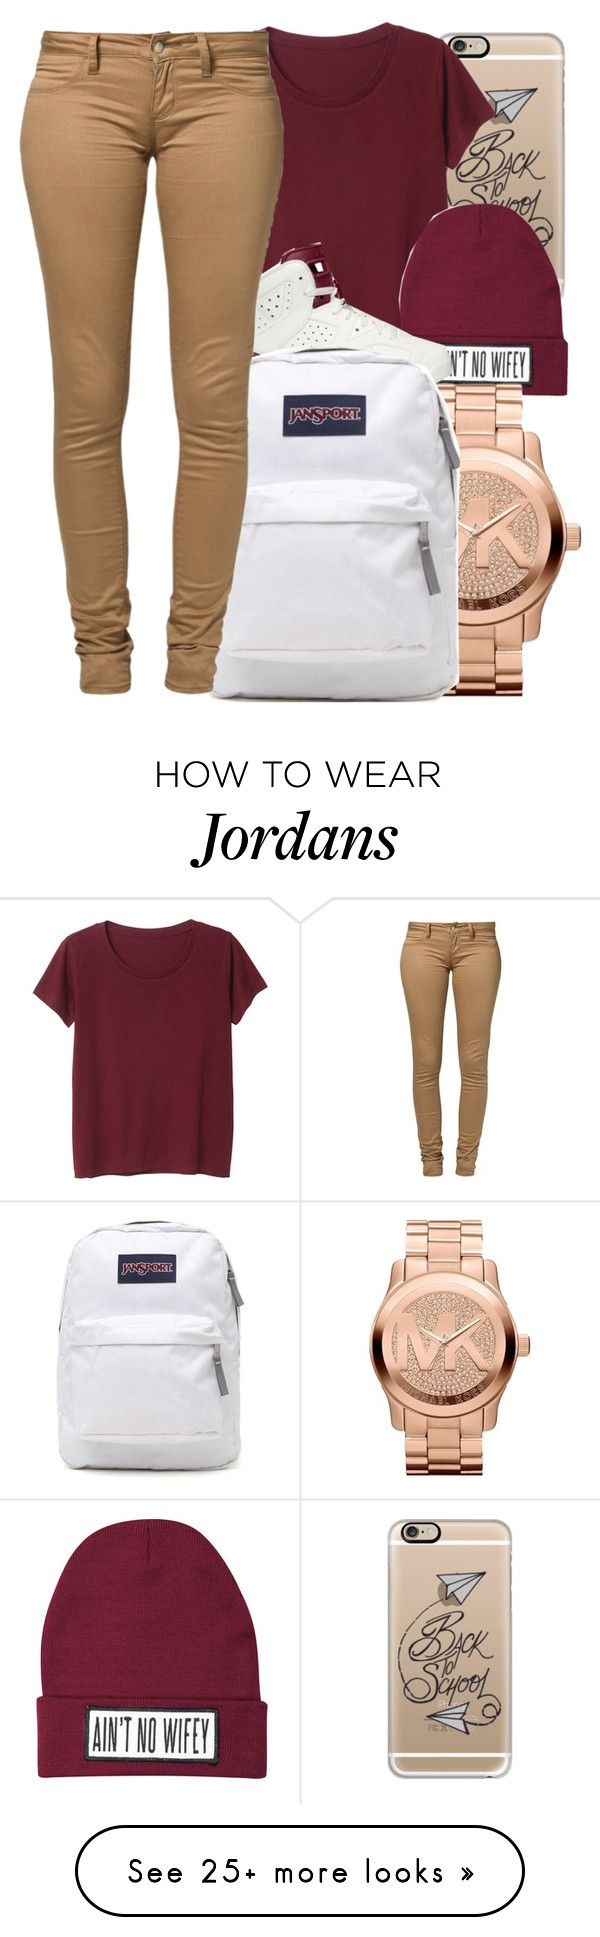 """""""✨"""" by w-ildhearts on Polyvore featuring Casetify, Monki, Dimepiece, NIKE, Michael Kors, JanSport, Monkee Genes, women's clothing, women's fashion and women"""